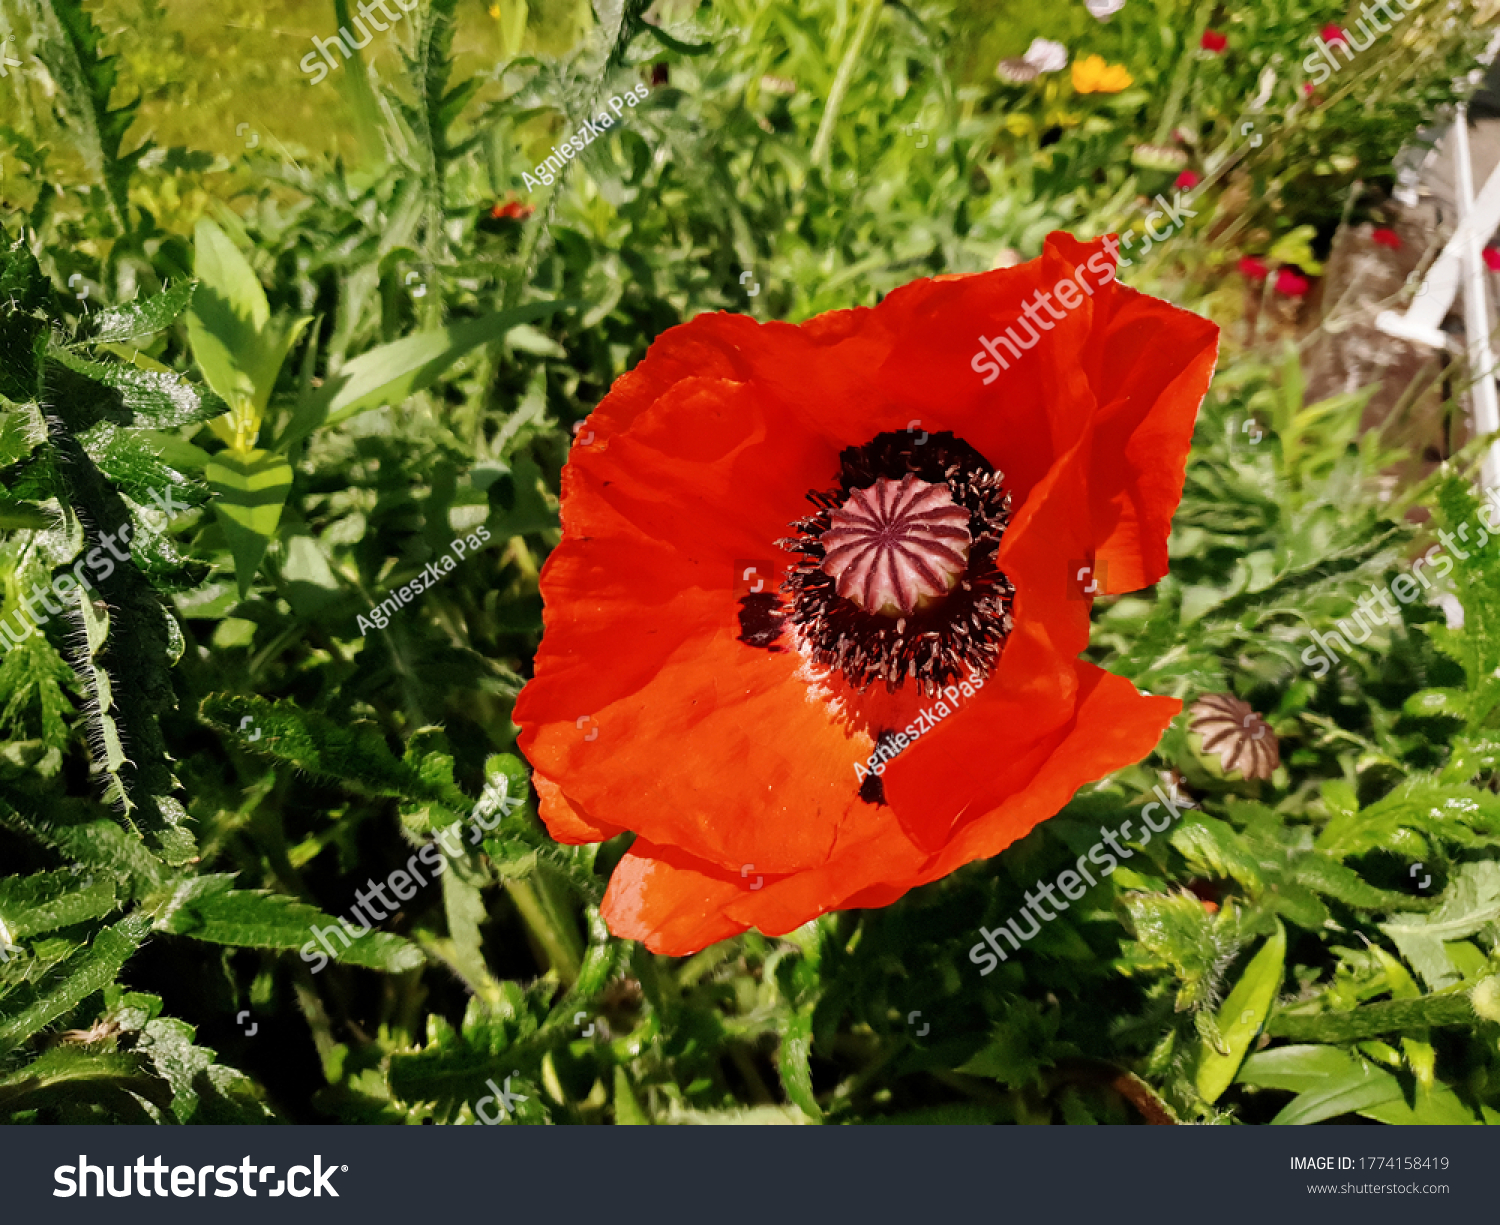 stock-photo-close-up-view-of-red-poppy-f